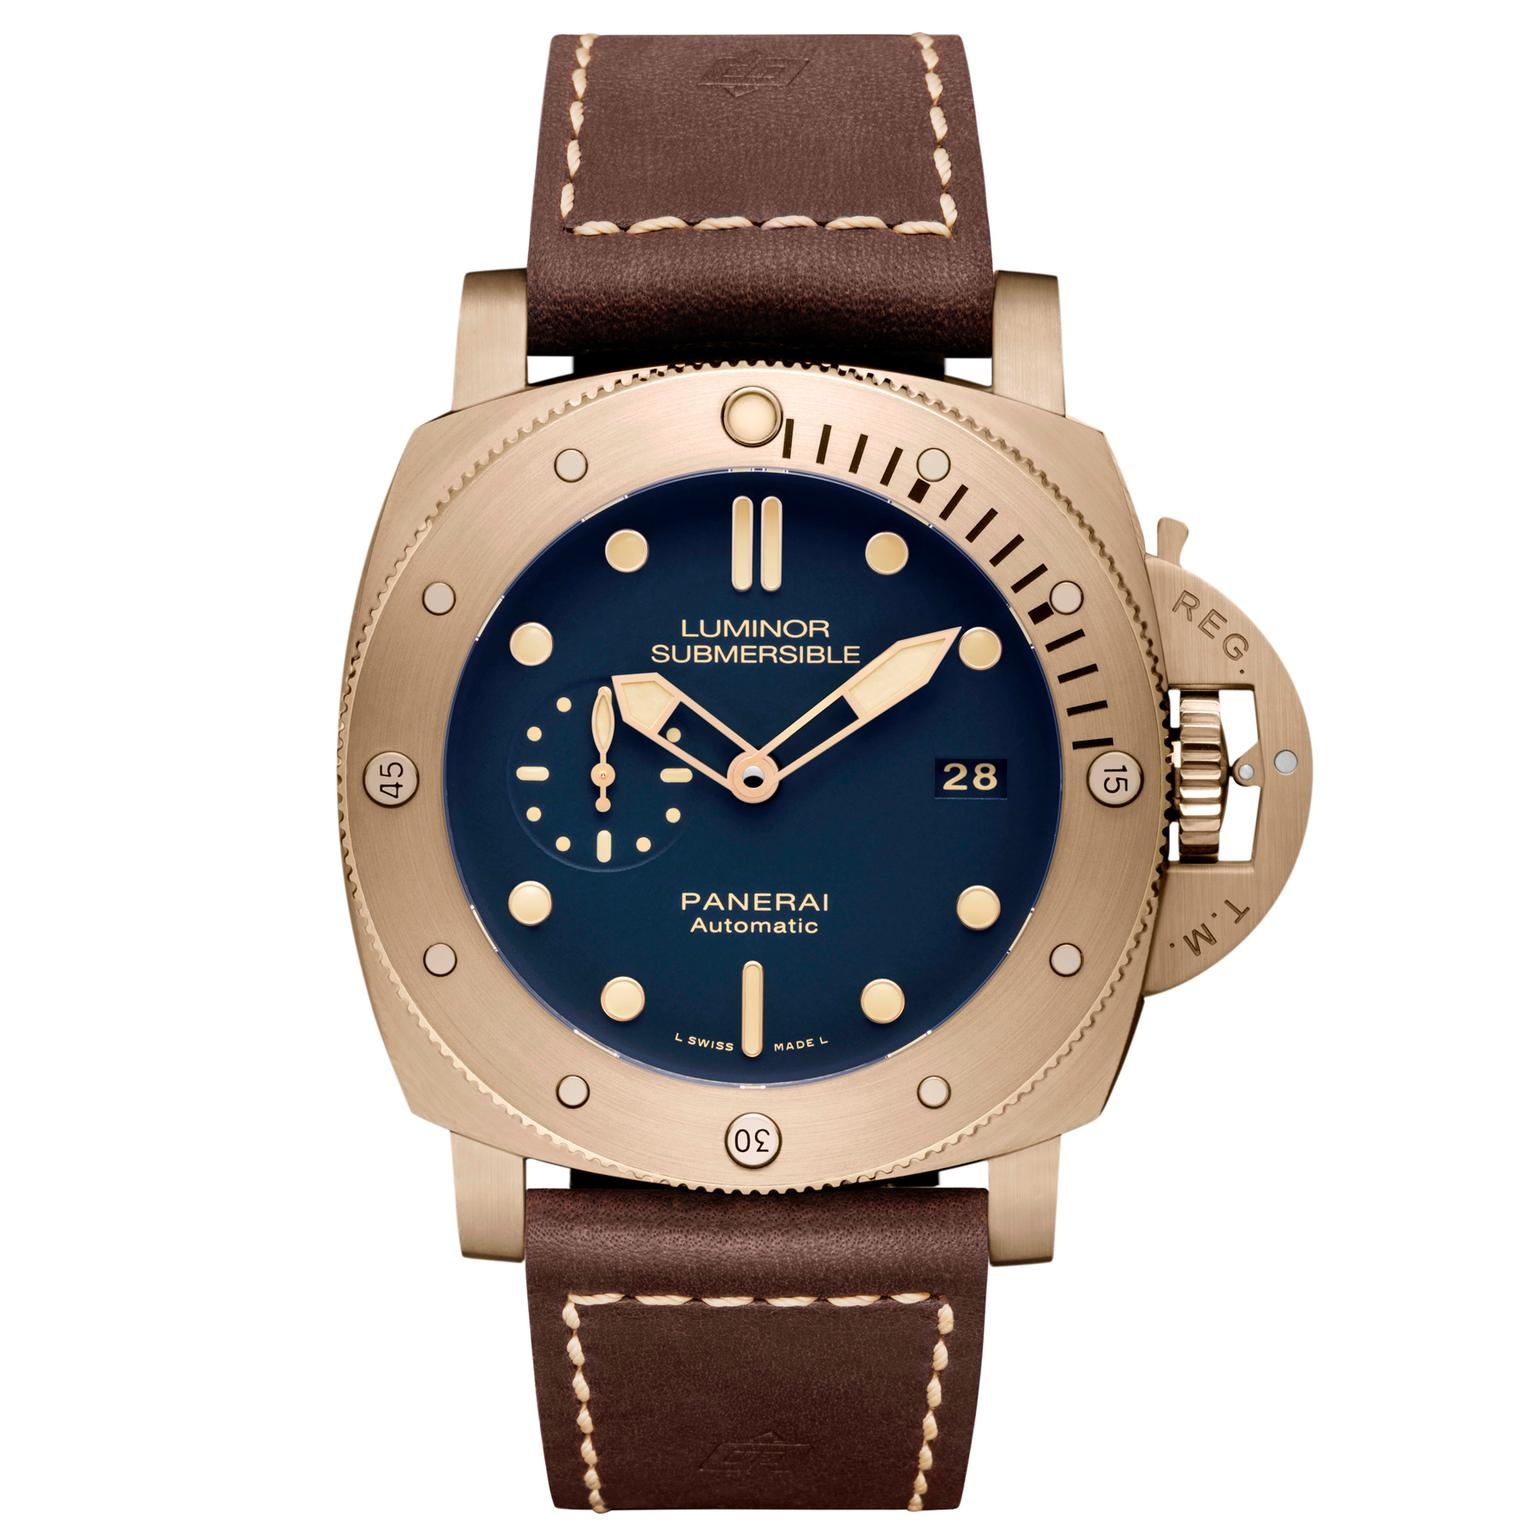 Panerai Luminor Submersible 1950 watch